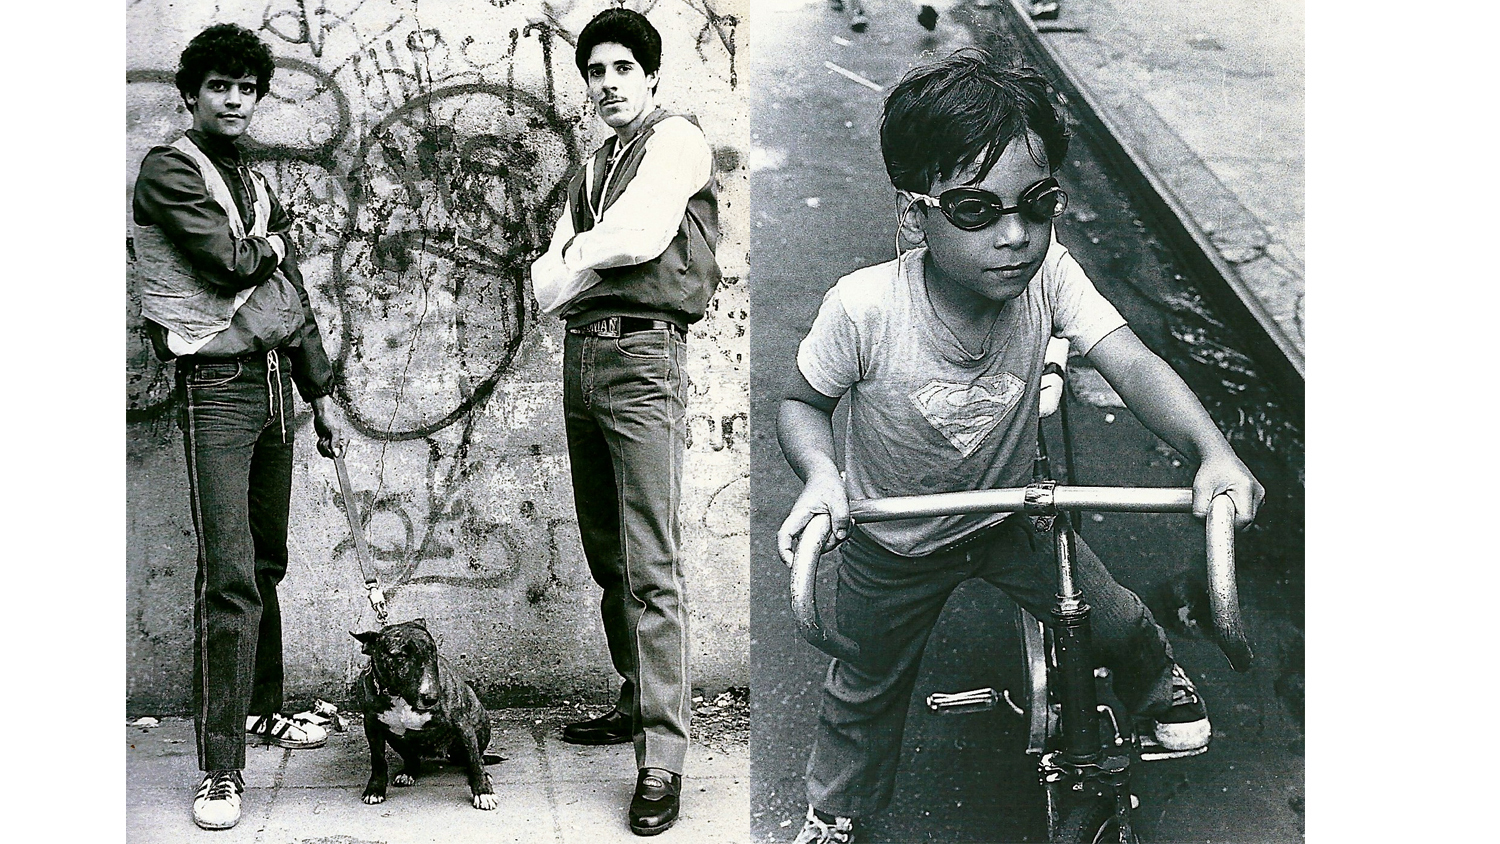 L: Locals on Avenue B, 1981. R: Losalida Boy, 1981